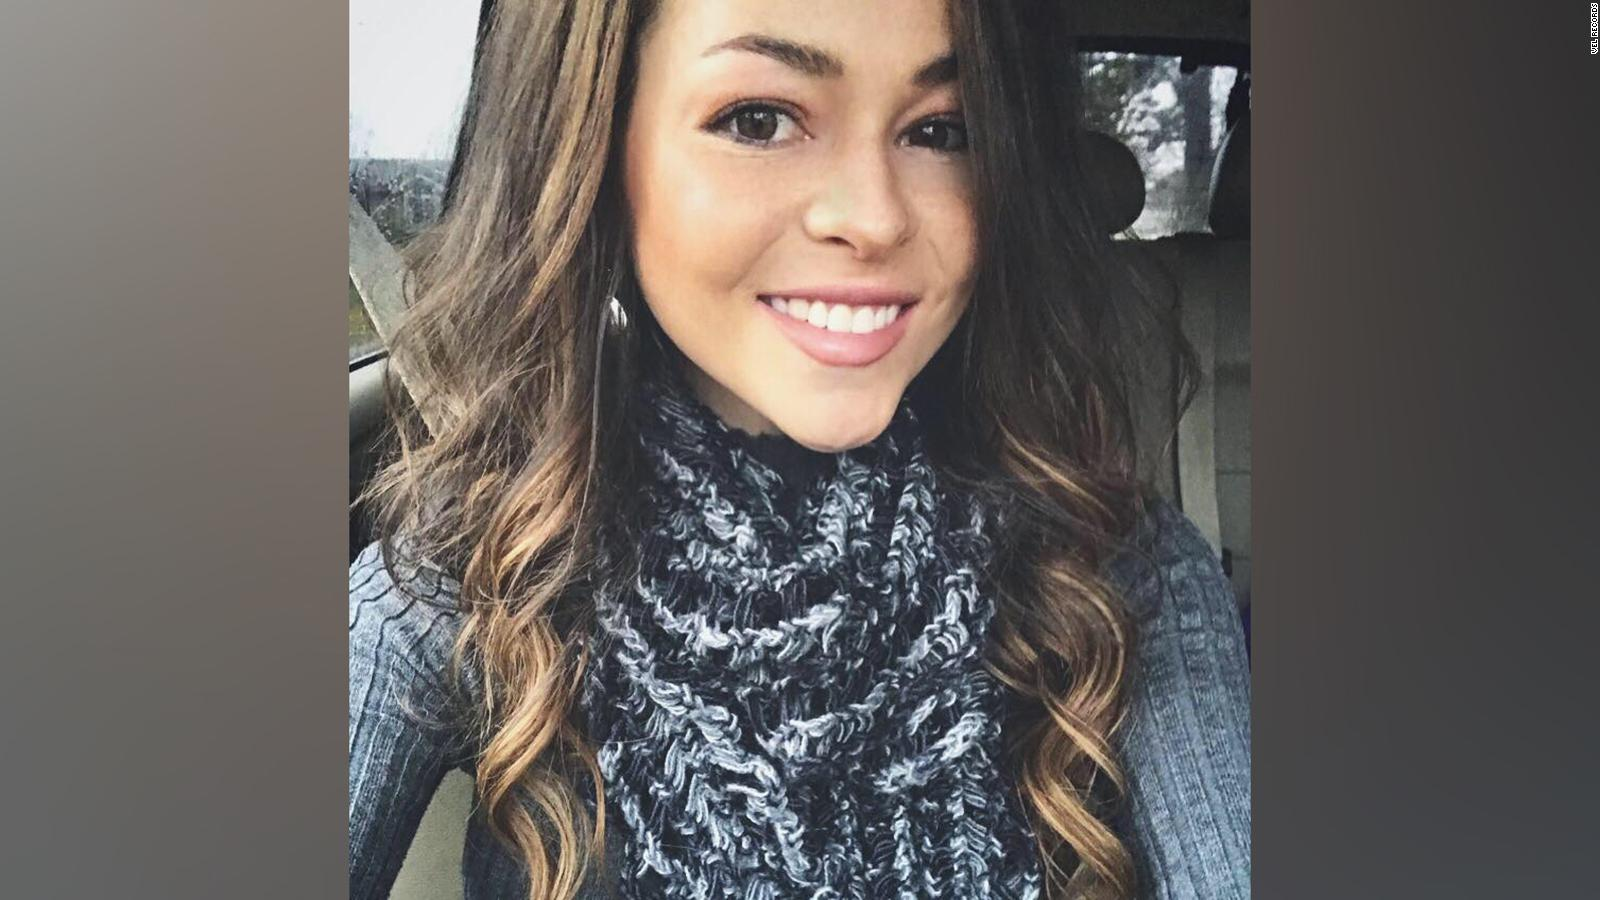 Who was Cady Groves dating?